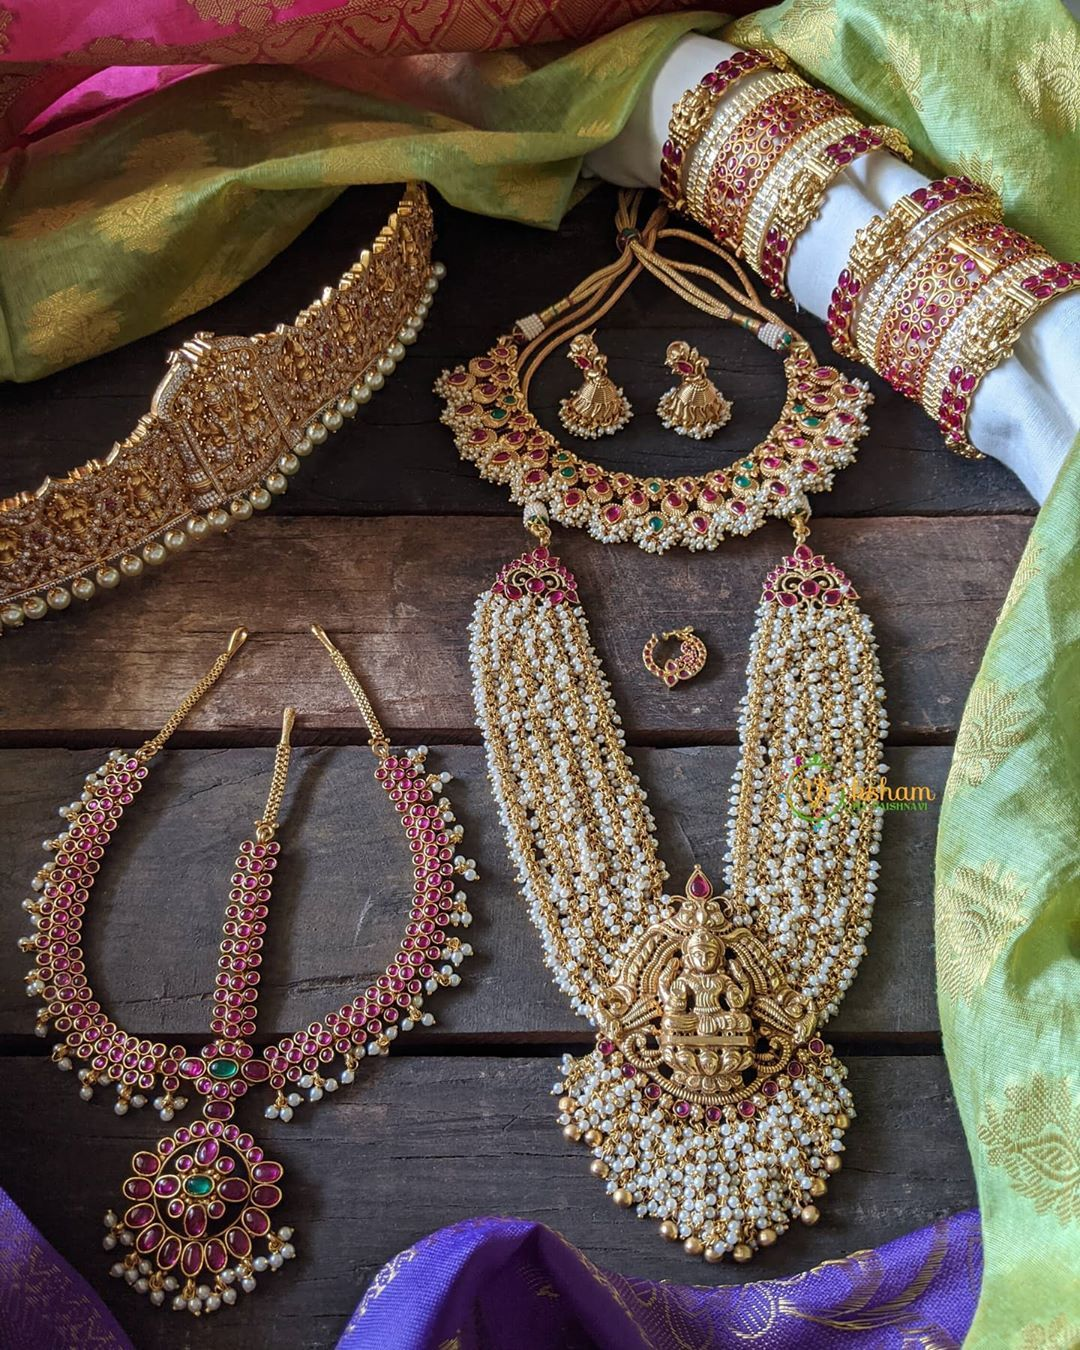 Bridal Jewellery Sets By The Brand Vriksham Contact Https Www Instagram Com V In 2020 Indian Jewelry Sets Indian Jewellery Design Earrings Antique Jewellery Designs